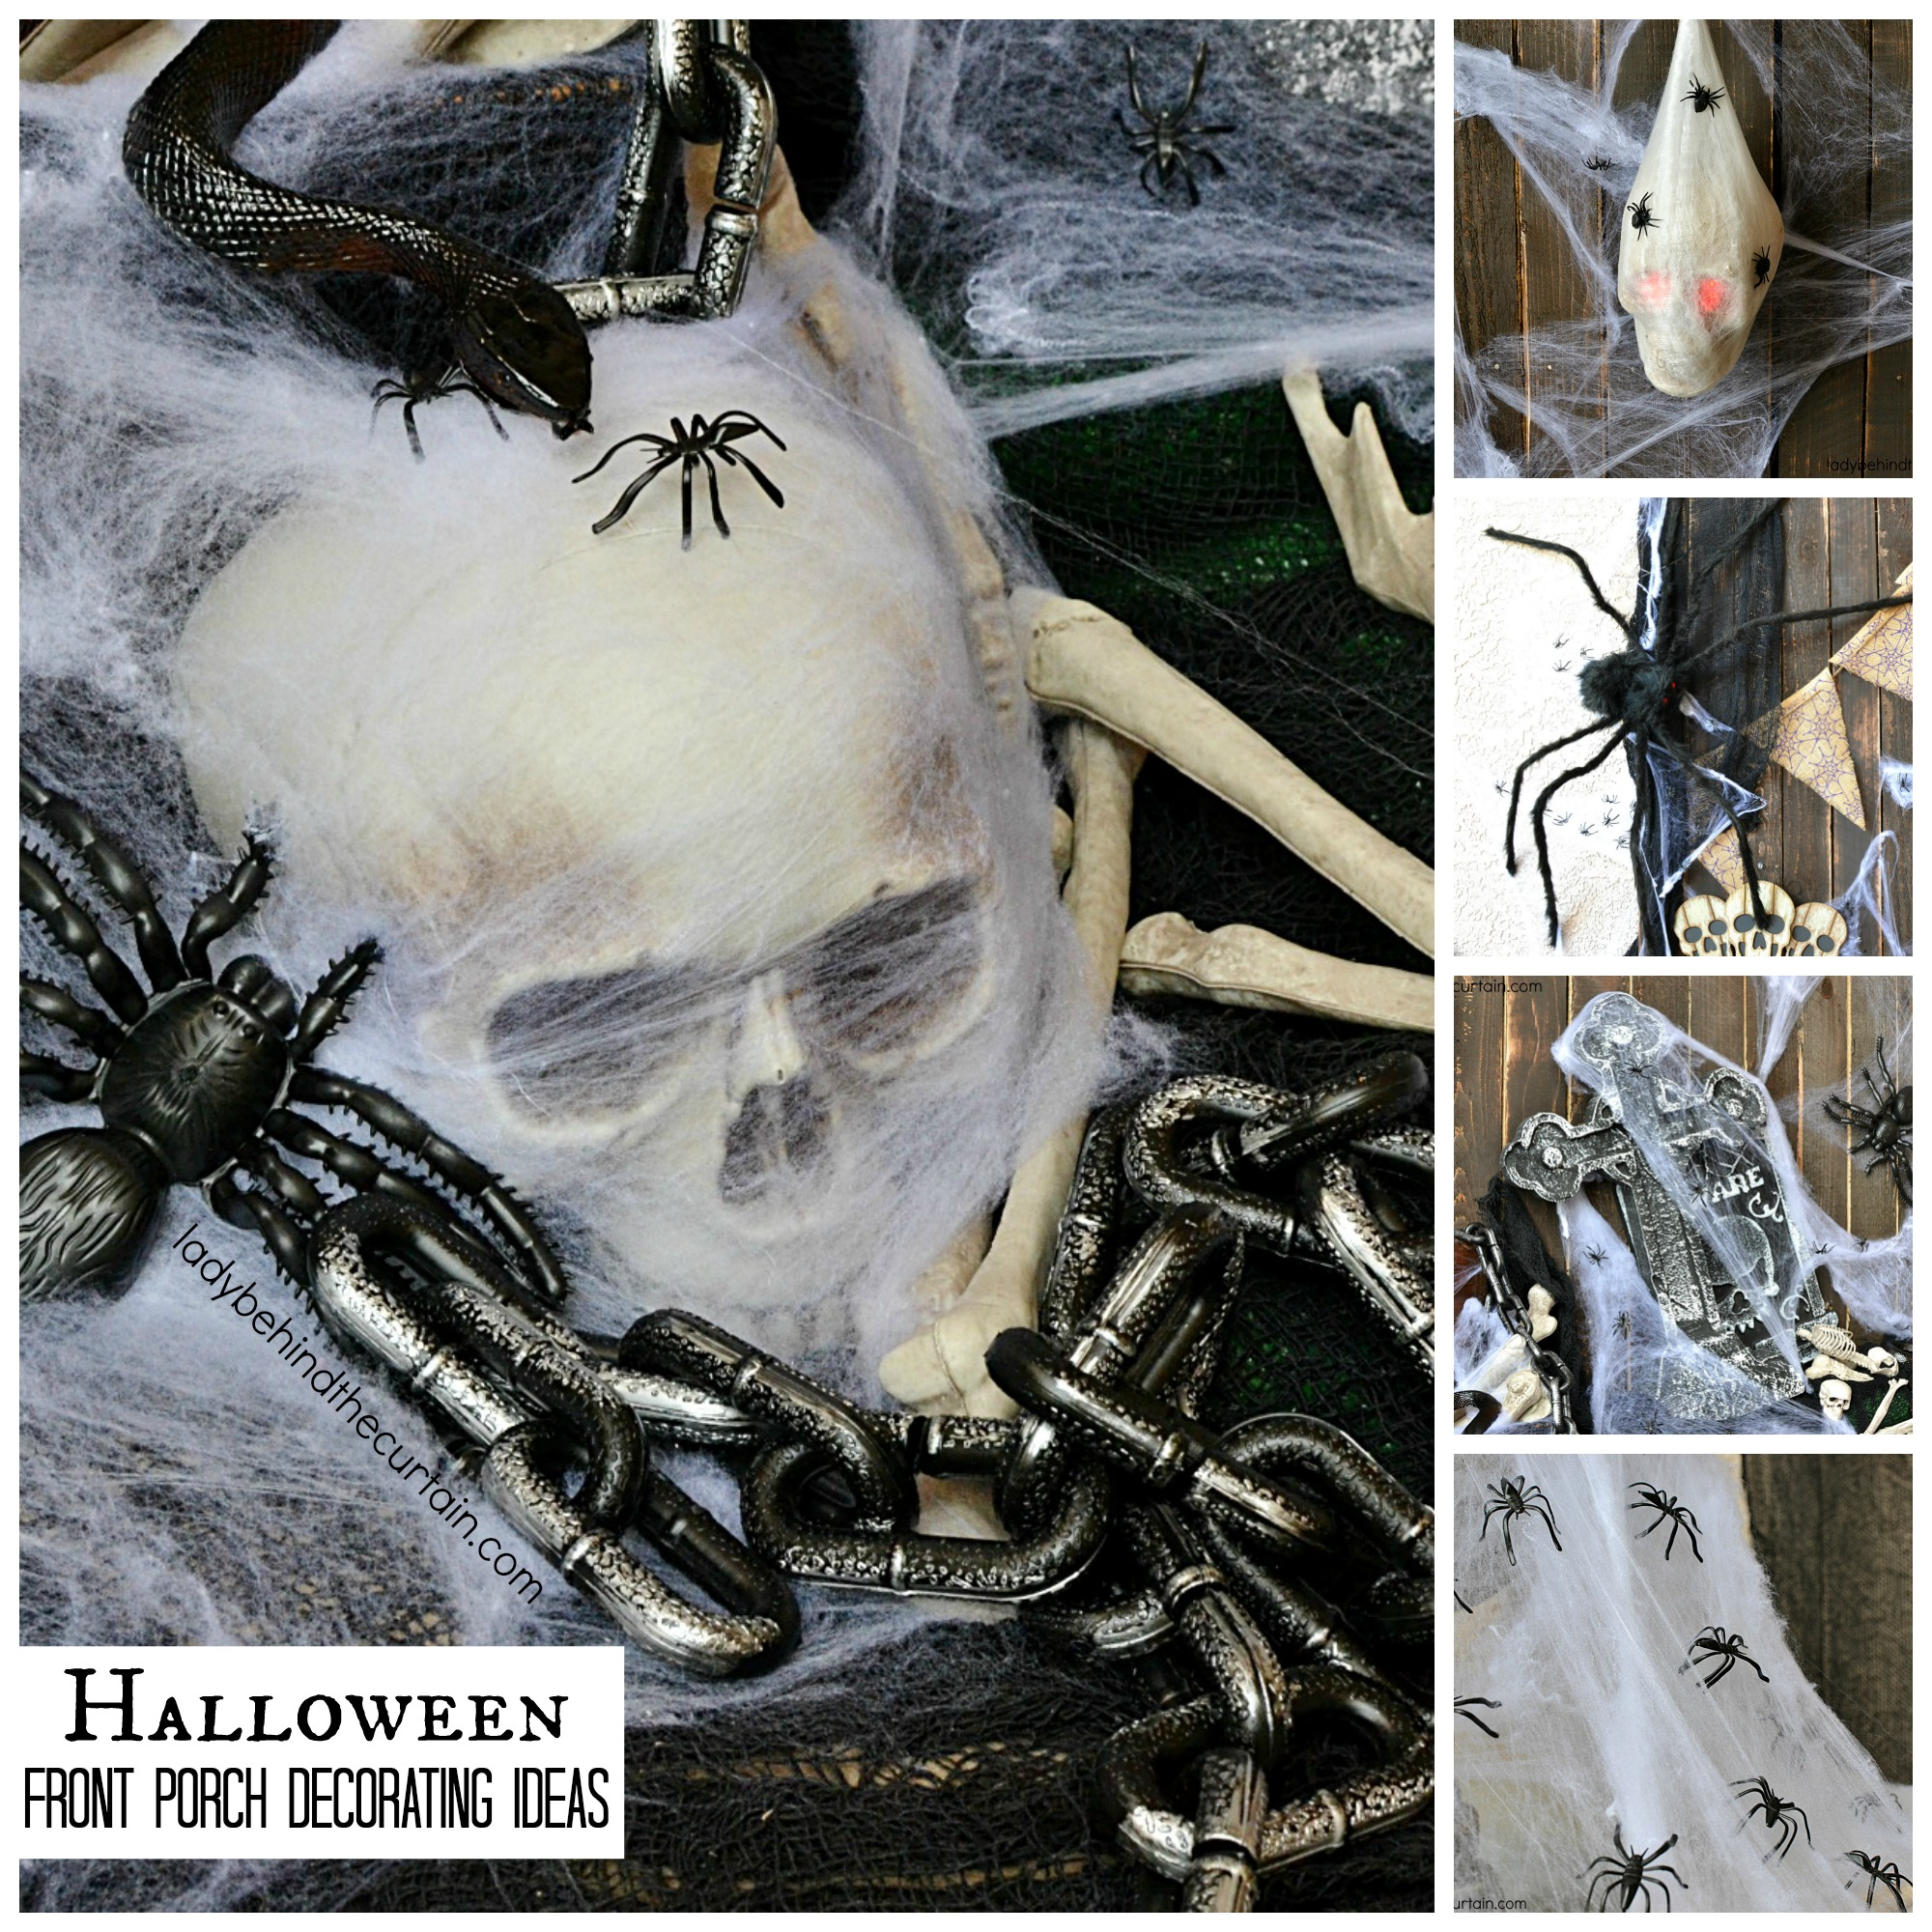 halloween front porch decorating ideas the theme for this creepy halloween front porch is bones